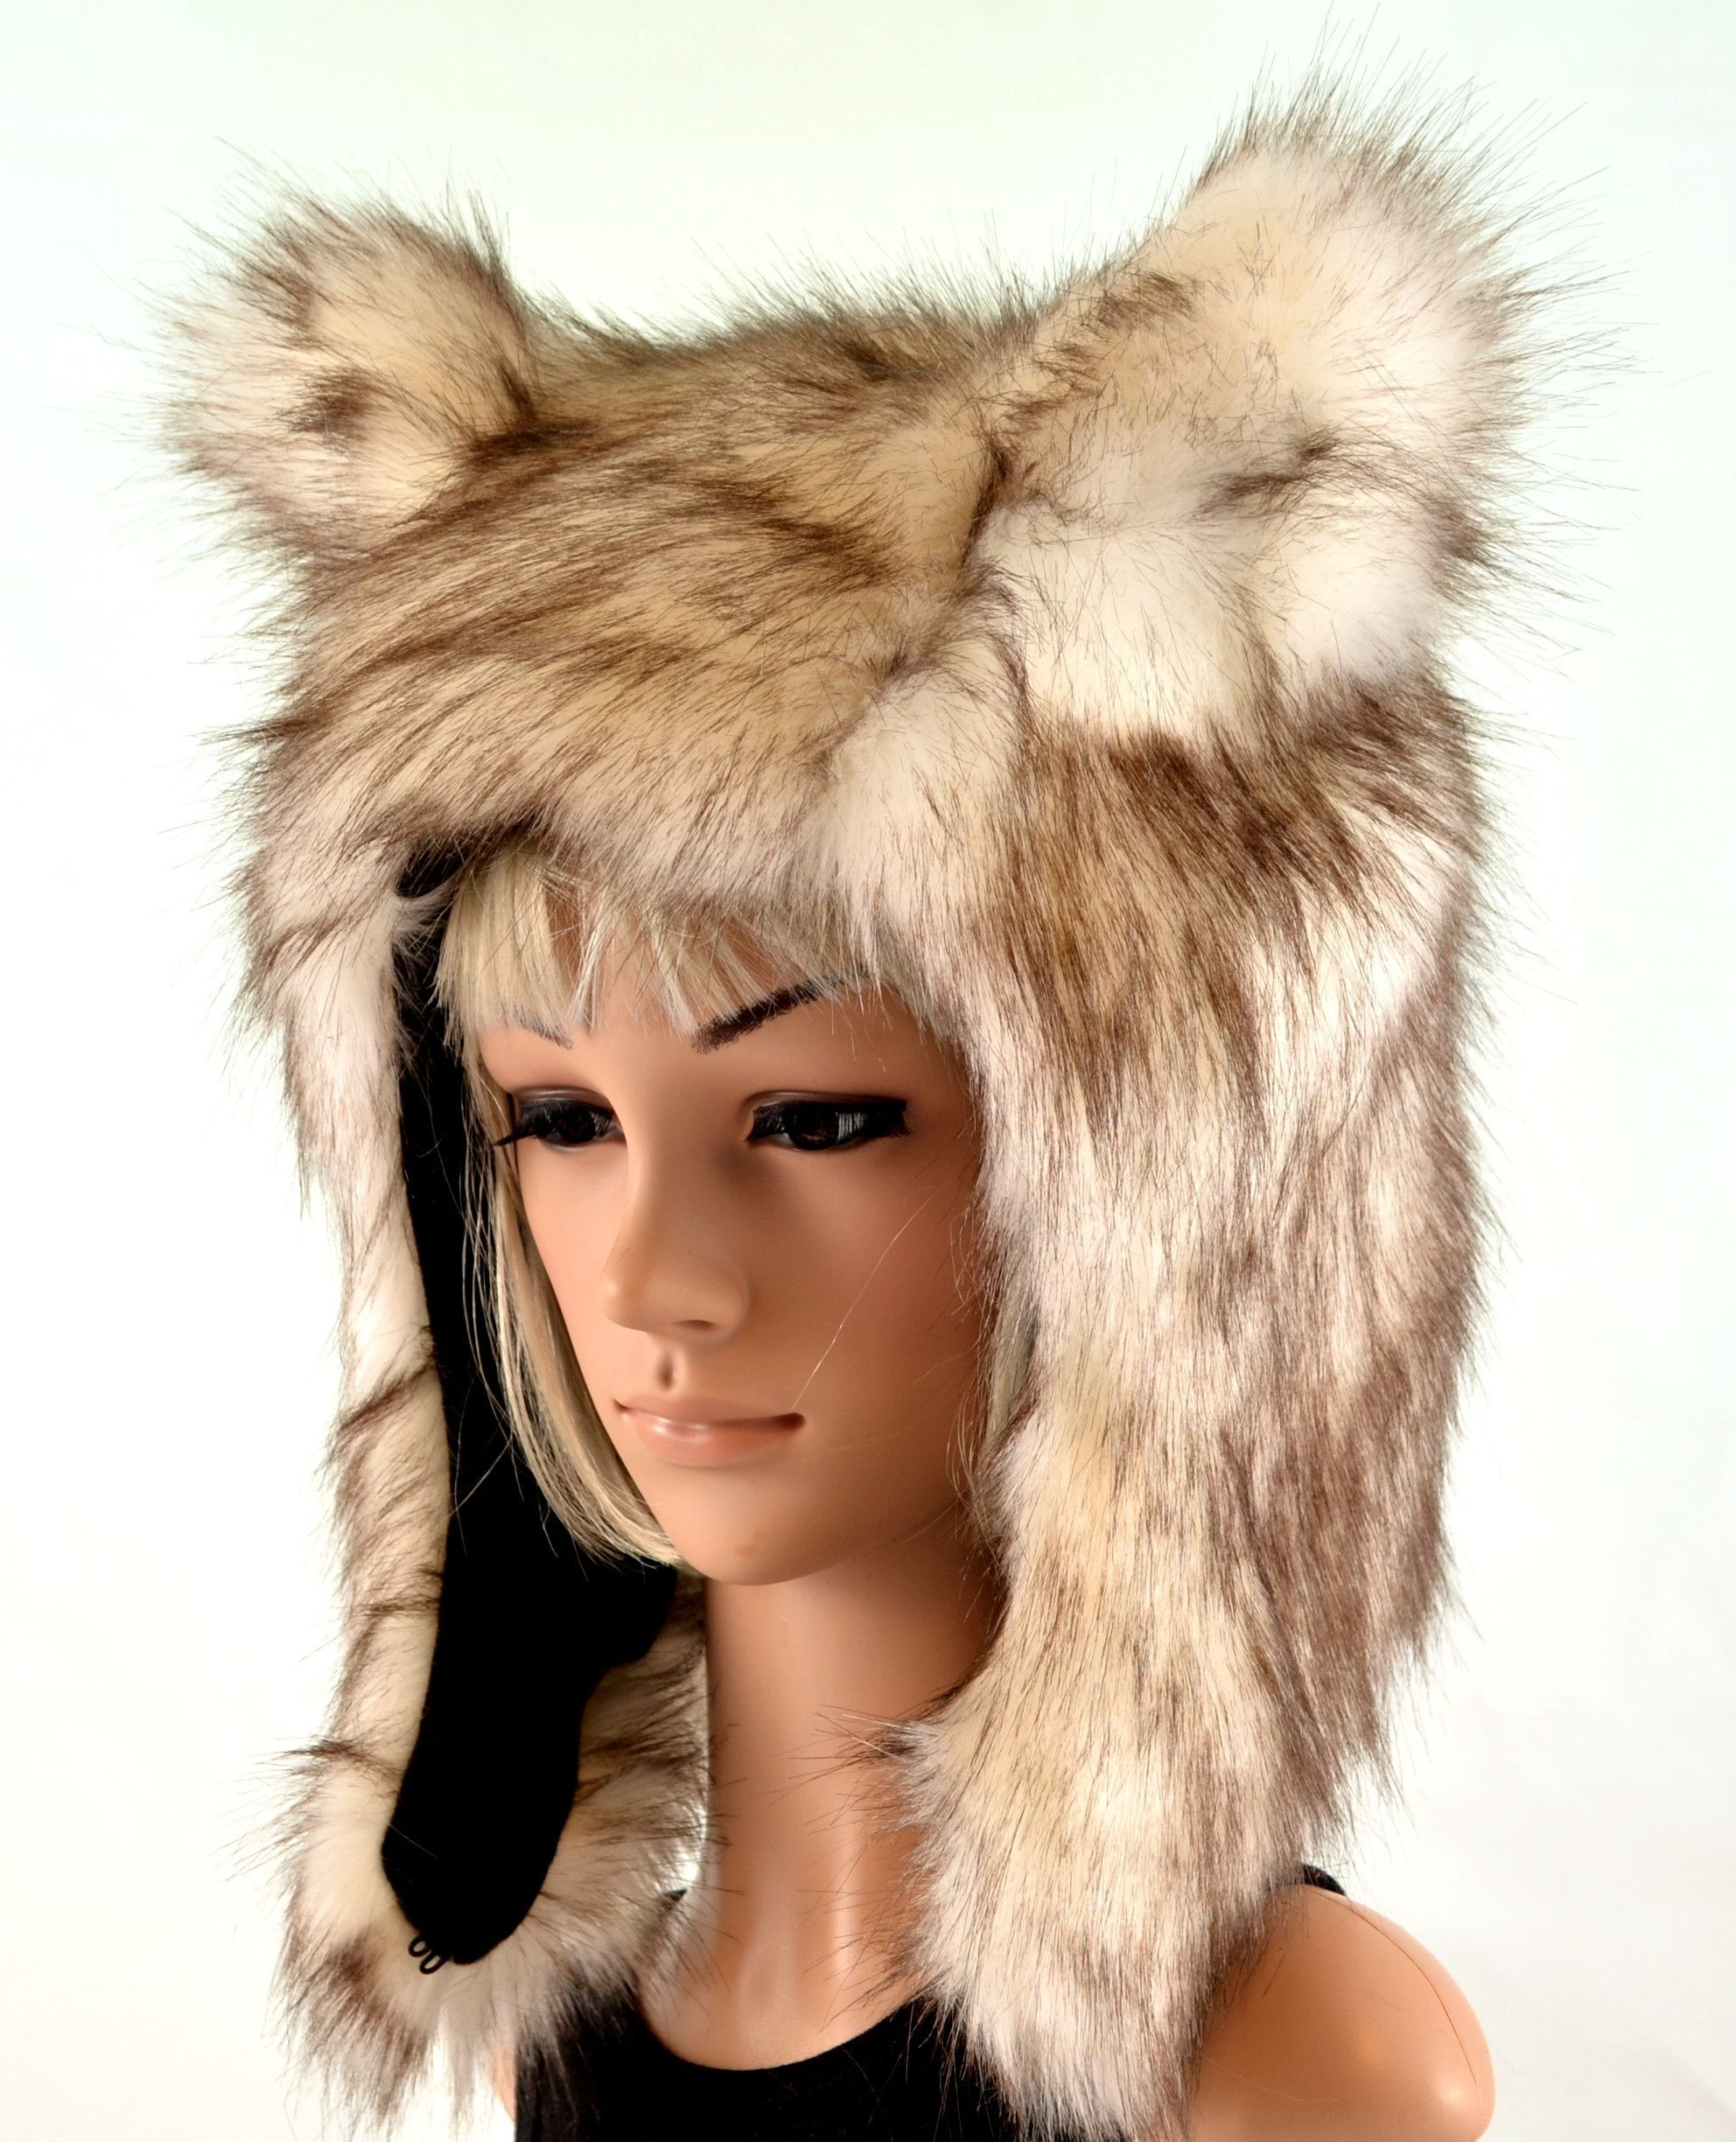 ad850a02b0ec2 This wolf hat is made of a soft natural looking faux fur that has a white  base with subtle brown tips. The inside lining is black fleece.